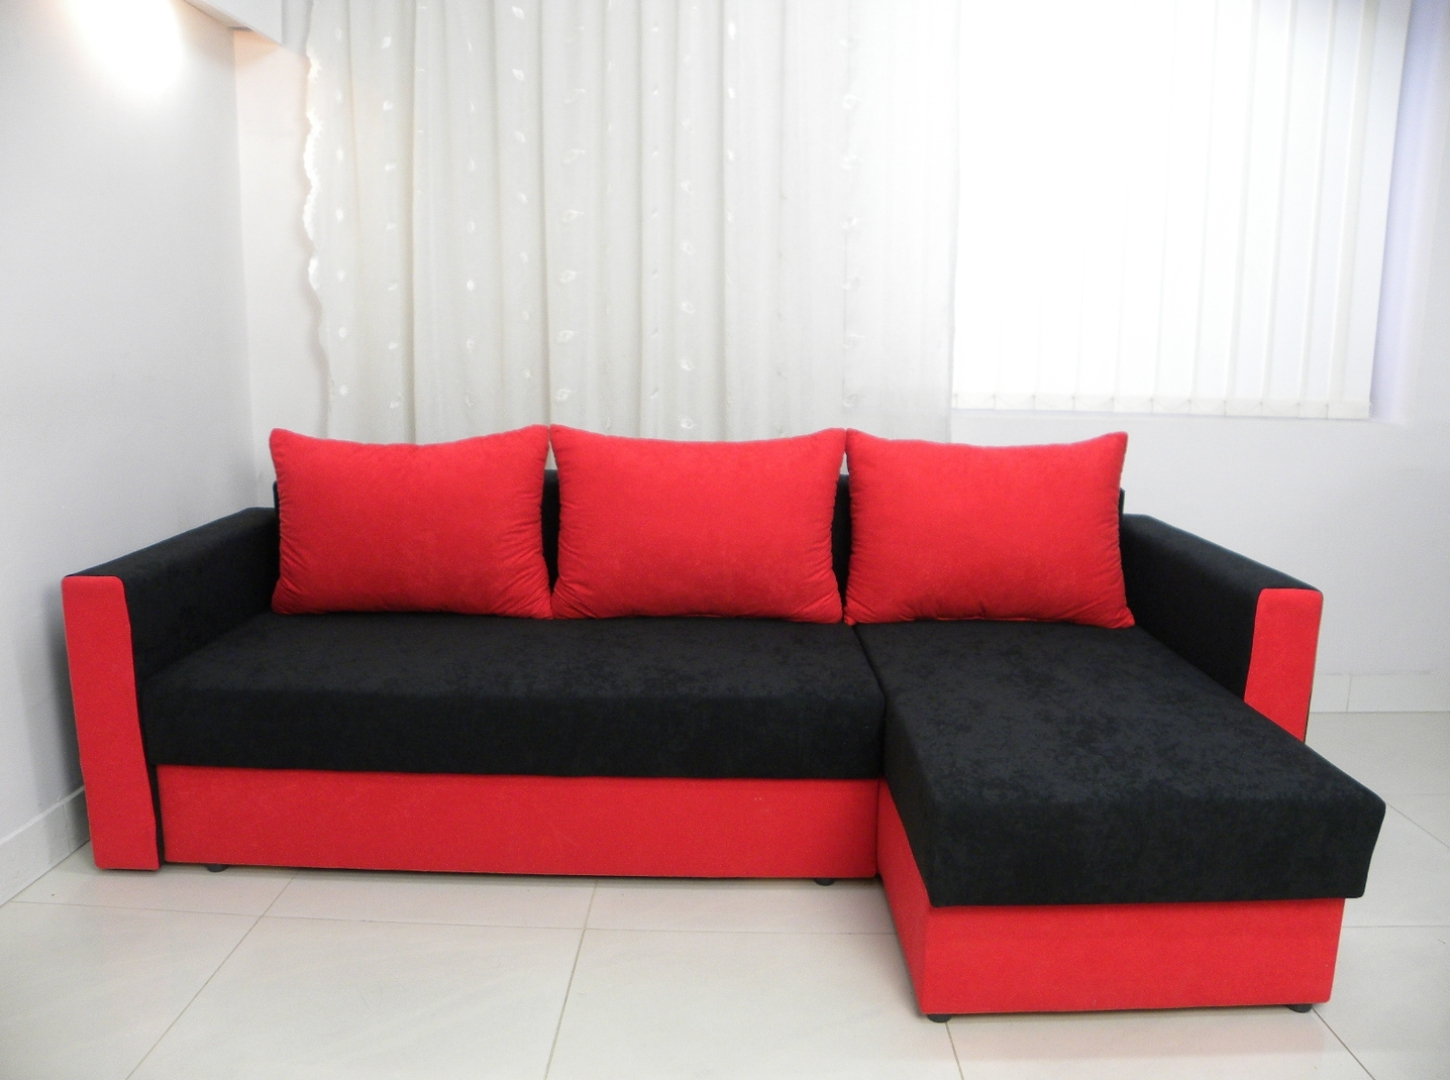 Red And Black Sofas Pertaining To Well Known Home Decor Red And Black Sofas Fabric Sofa Loveseat Set Fabricred (View 5 of 20)